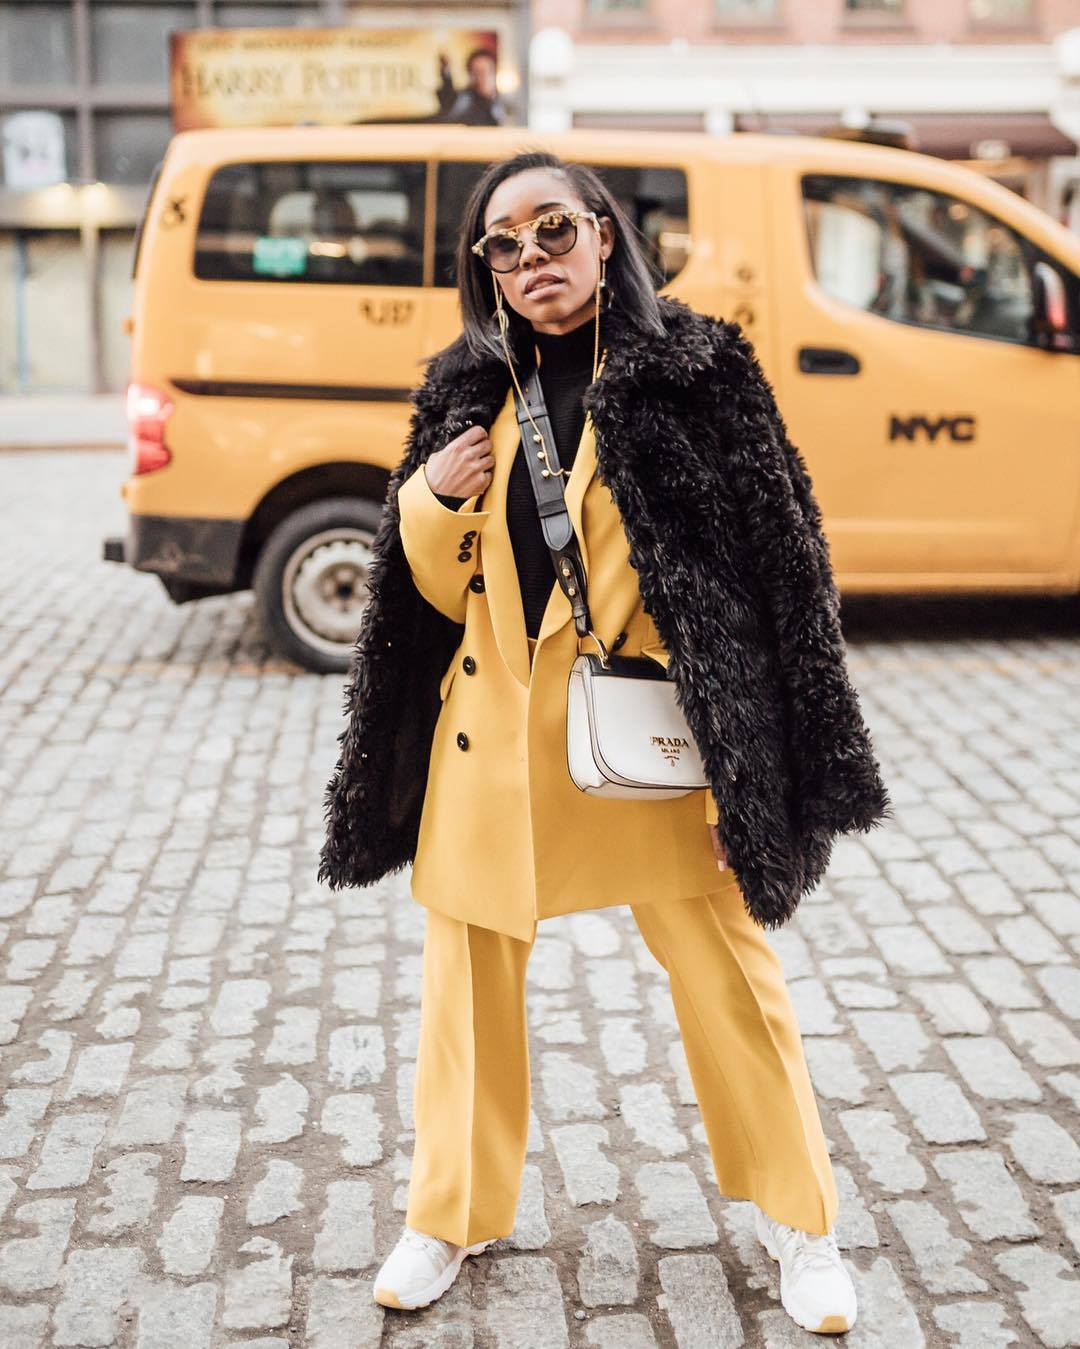 jacket blazer double breasted yellow topshop straight pants pleated white sneakers prada bag white bag black coat faux fur coat black turtleneck top